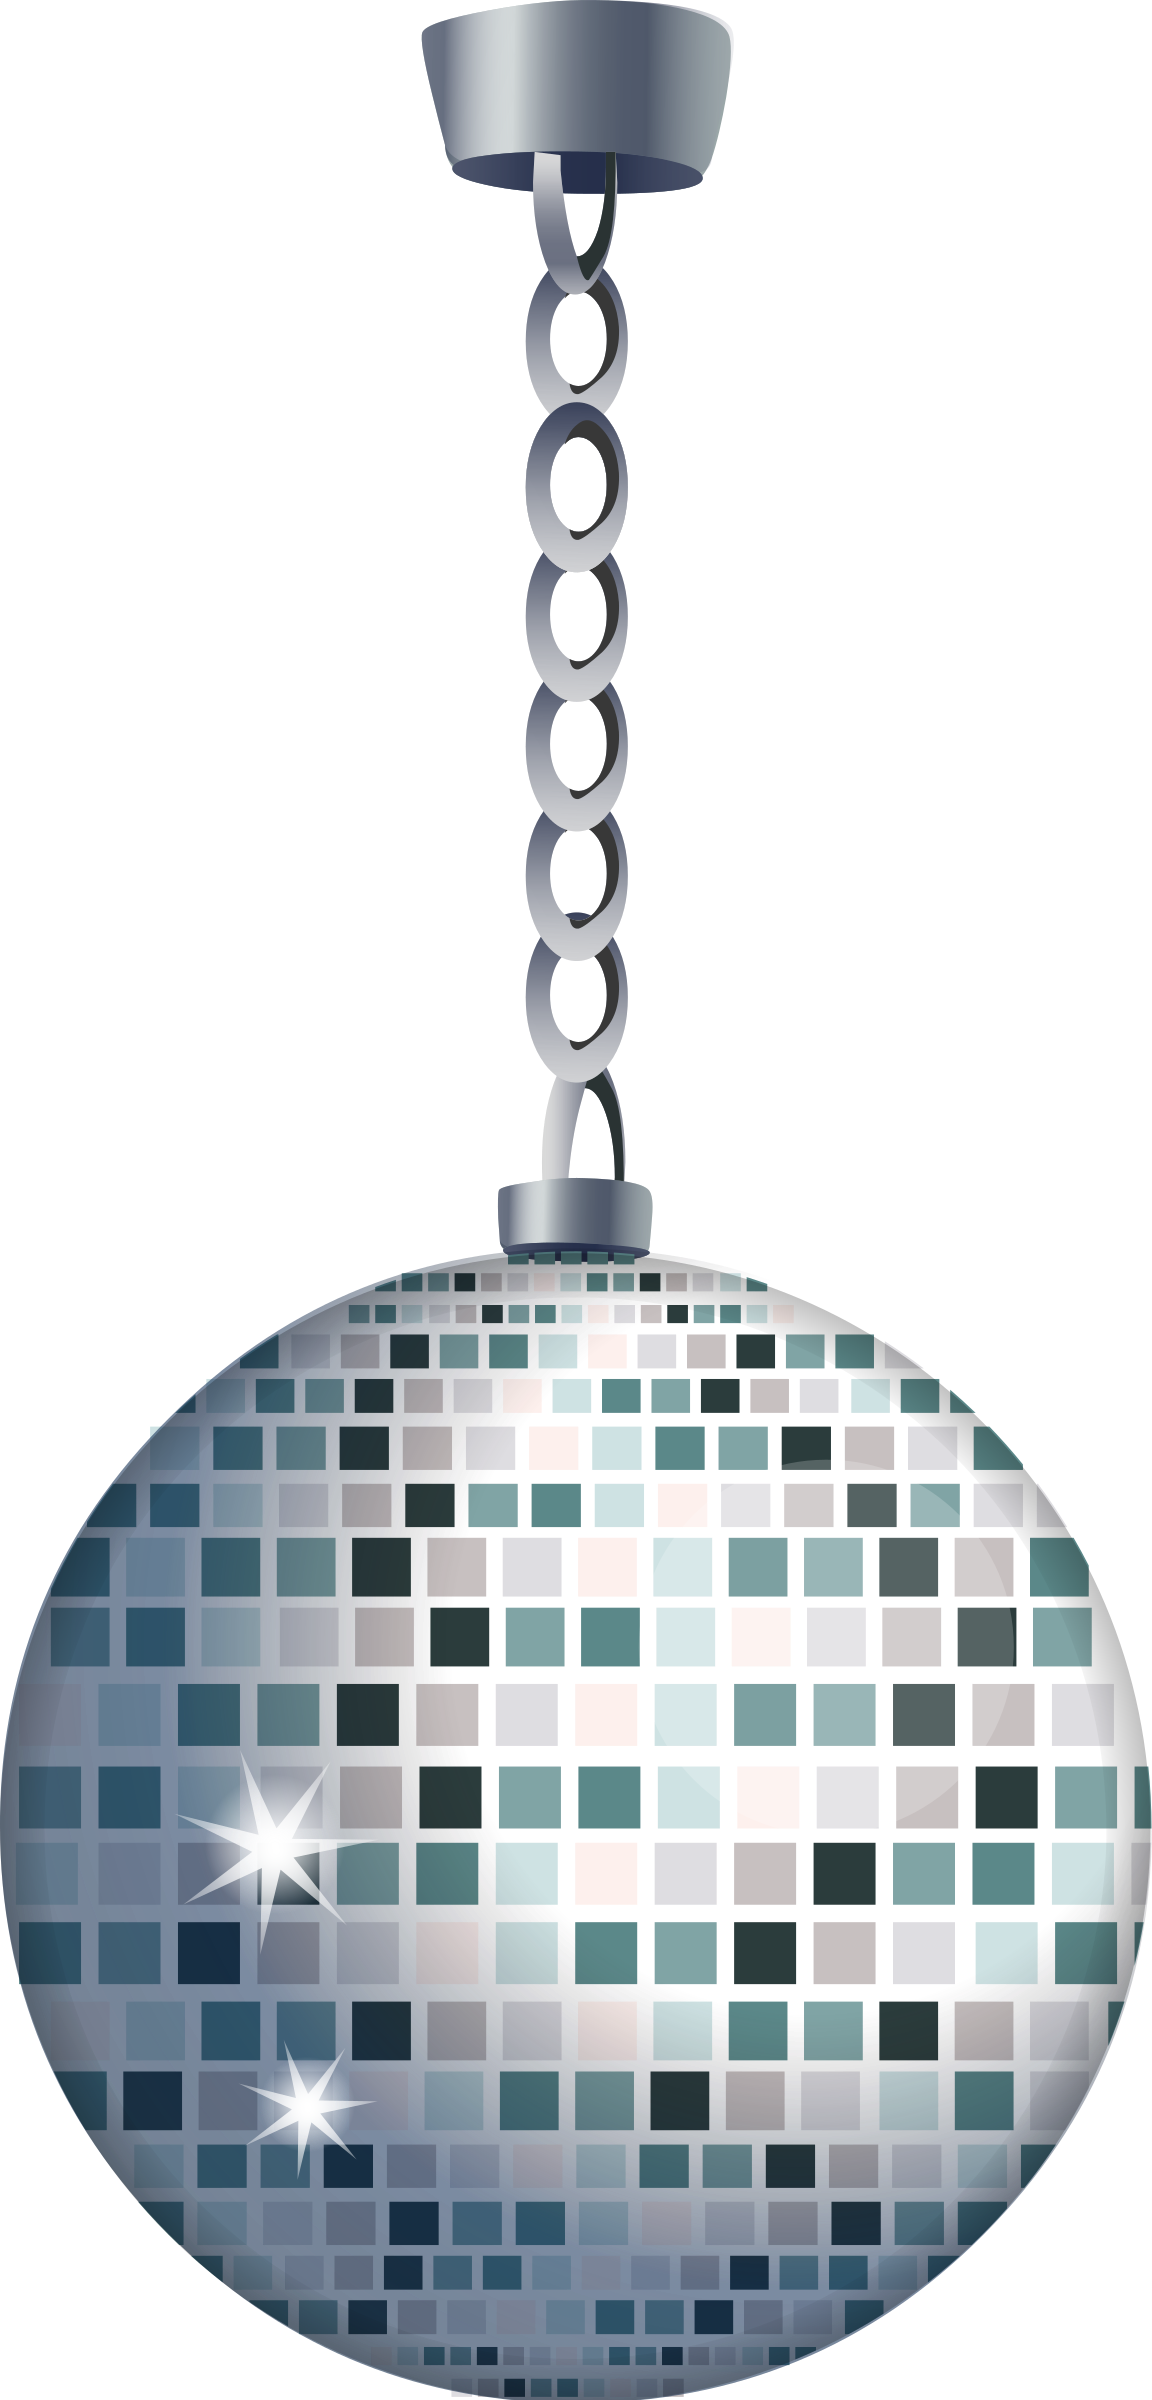 Glitter ball from Glitch by anarres